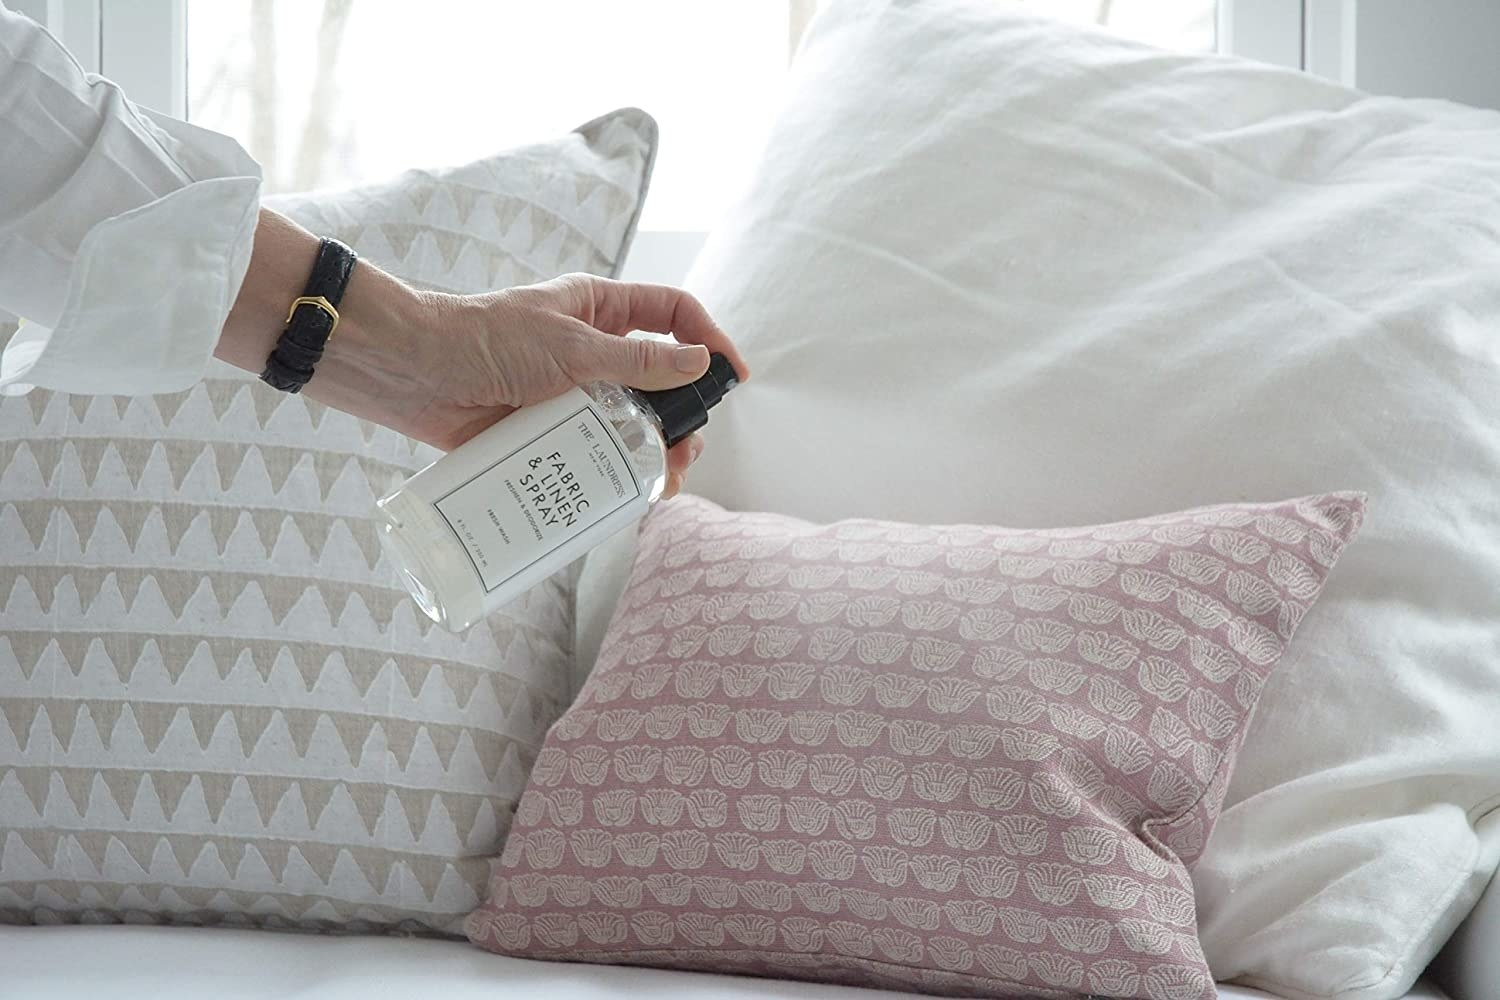 A person using the fabric spray onto a set of cushions